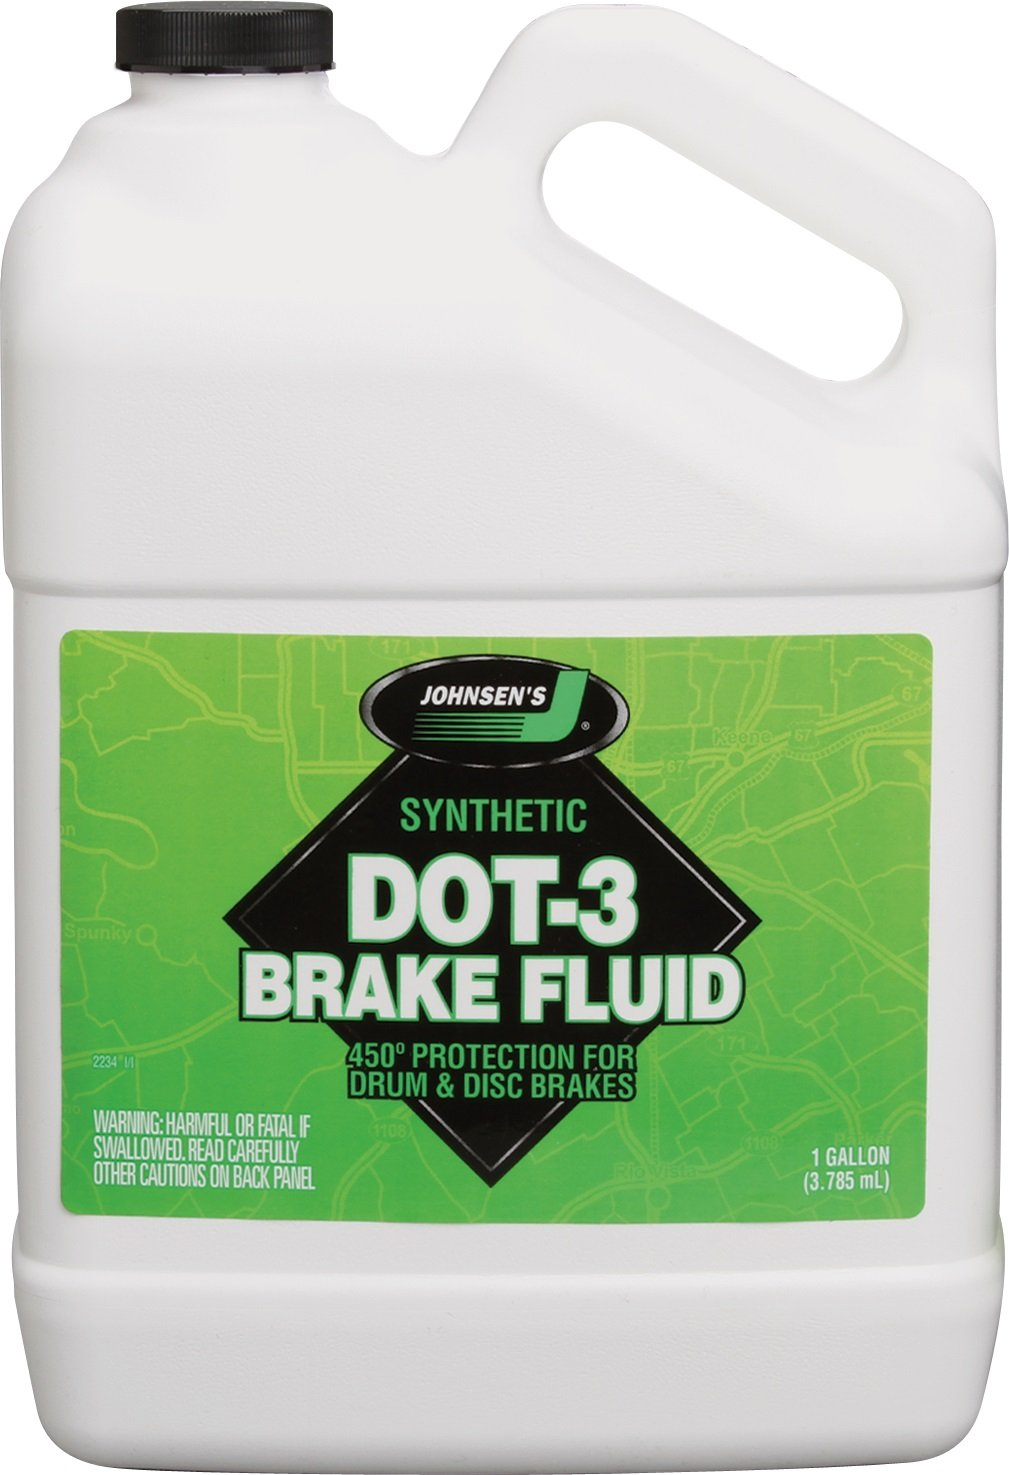 Johnsen's 2234-4PK Premium DOT-3 Brake Fluid - 1 Gallon, (Pack of 4) by Johnsen's